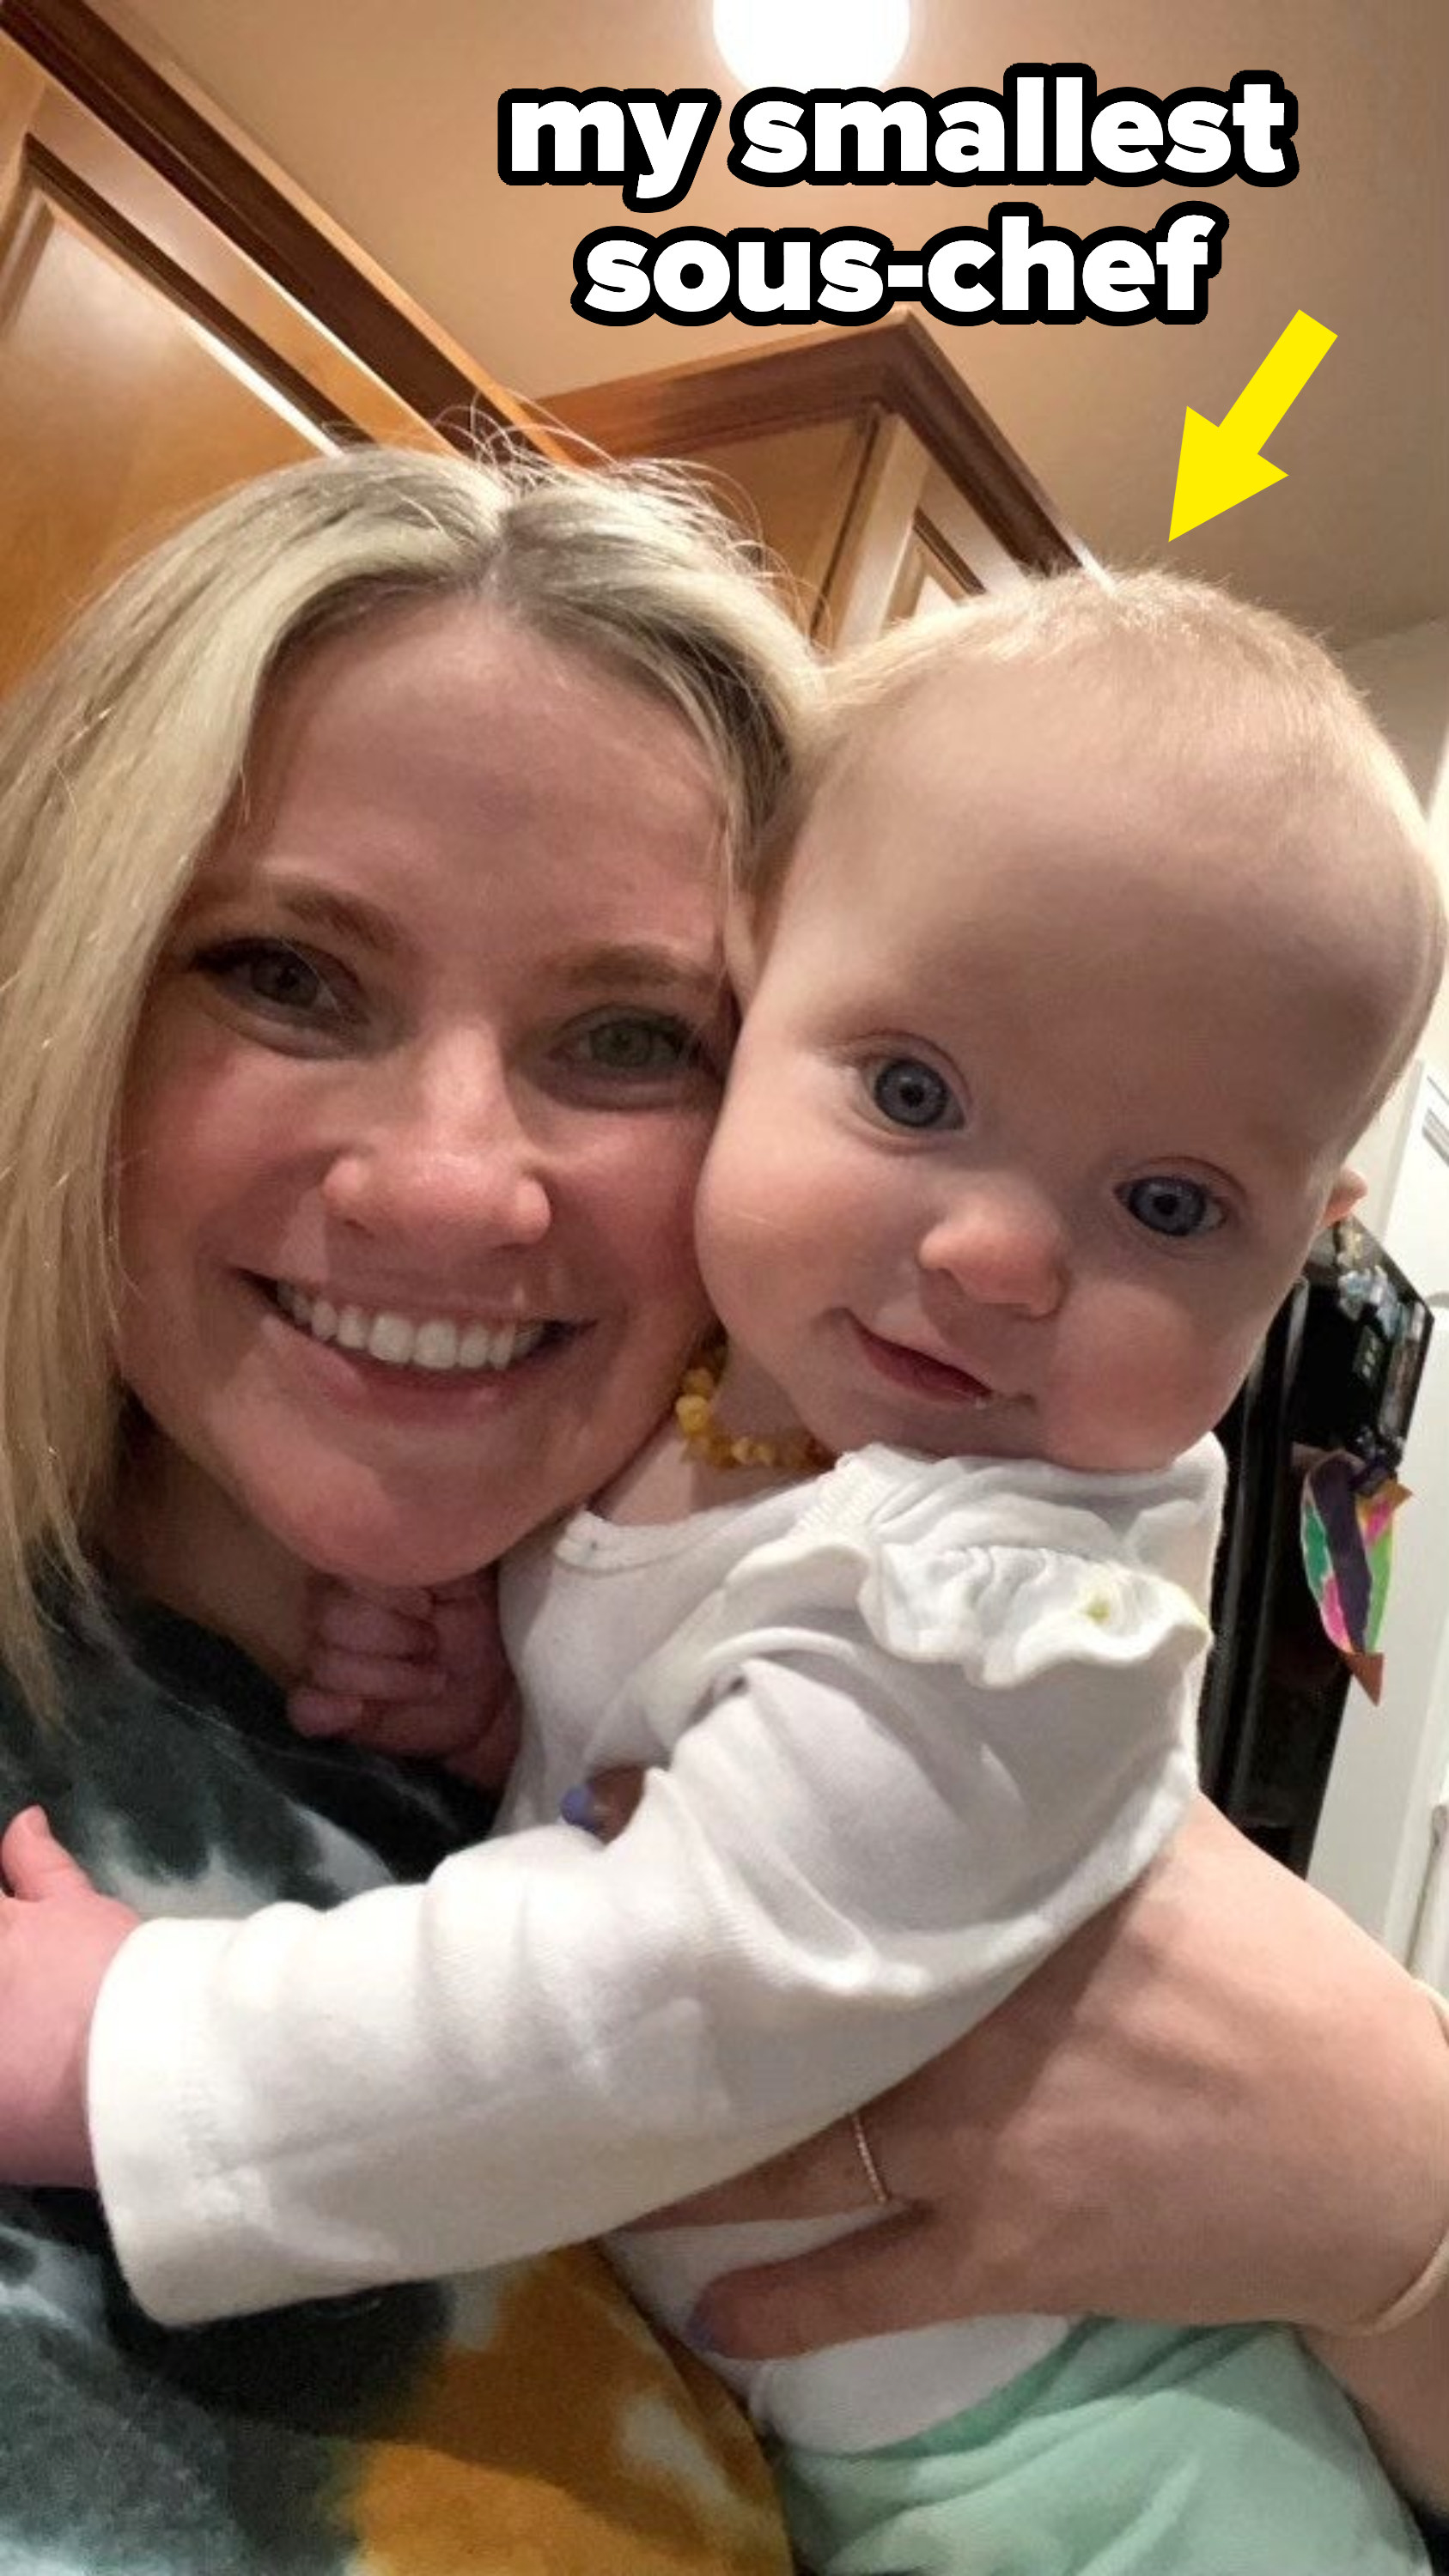 The author and her baby daughter